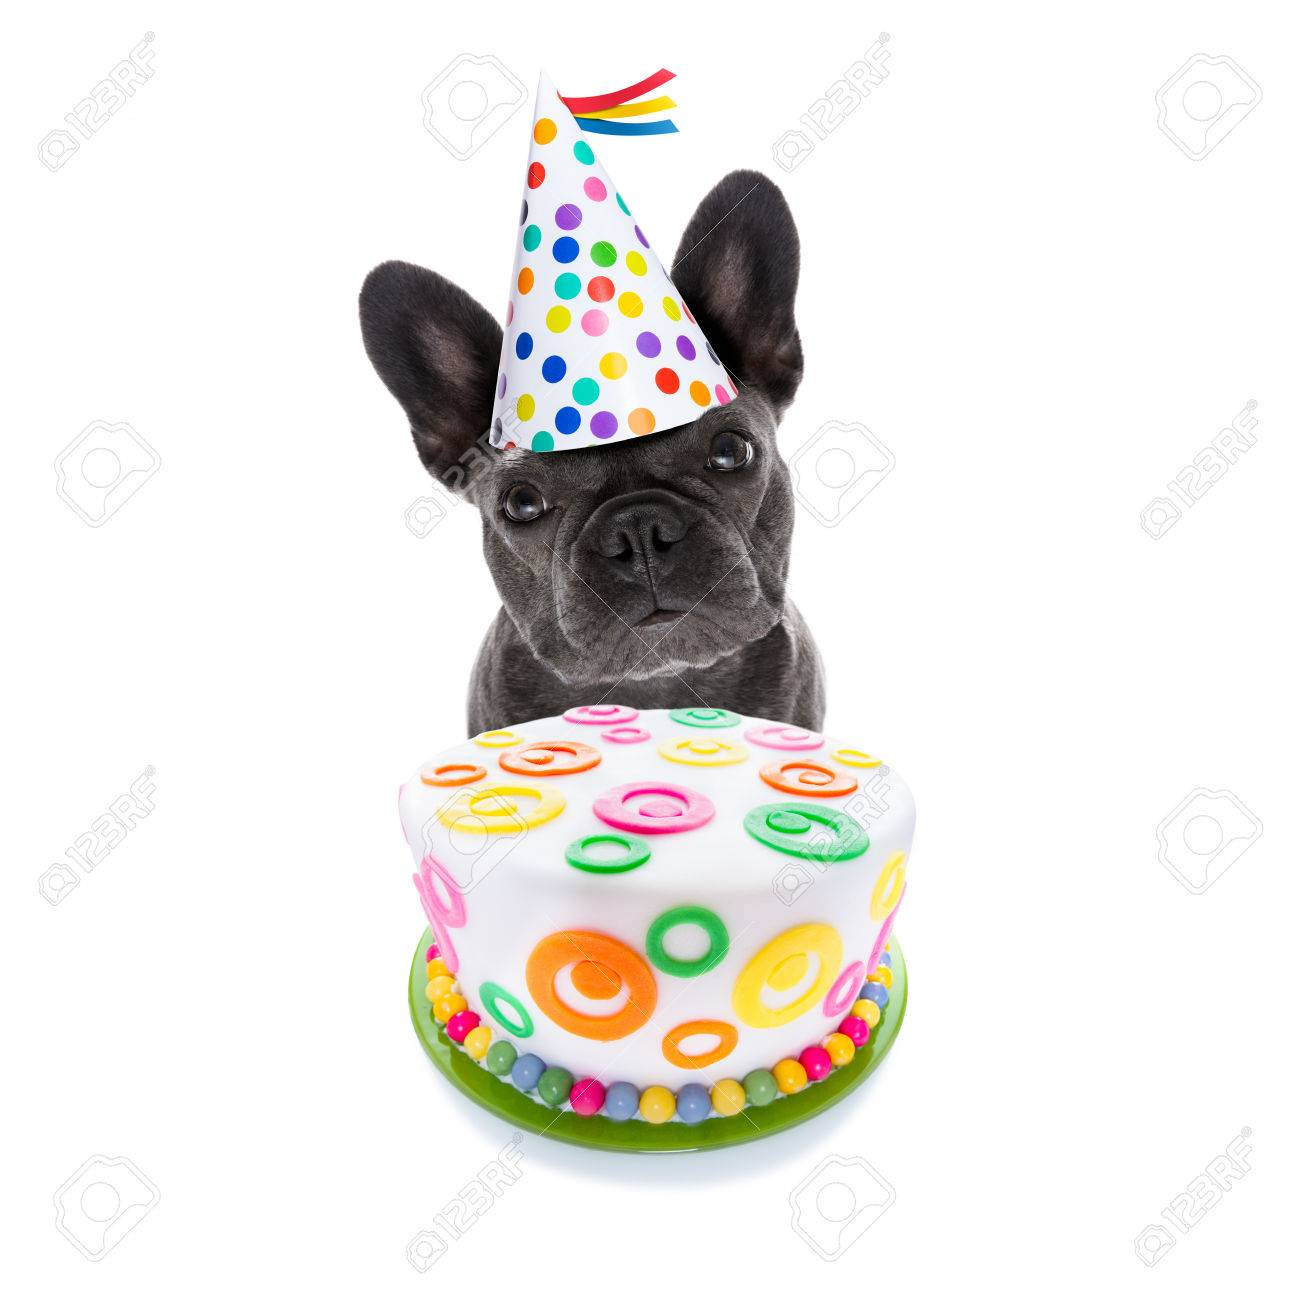 French Bulldog Dog Hungry For A Happy Birthday Cake Wearing Stock Photo Picture And Royalty Free Image Image 85922614